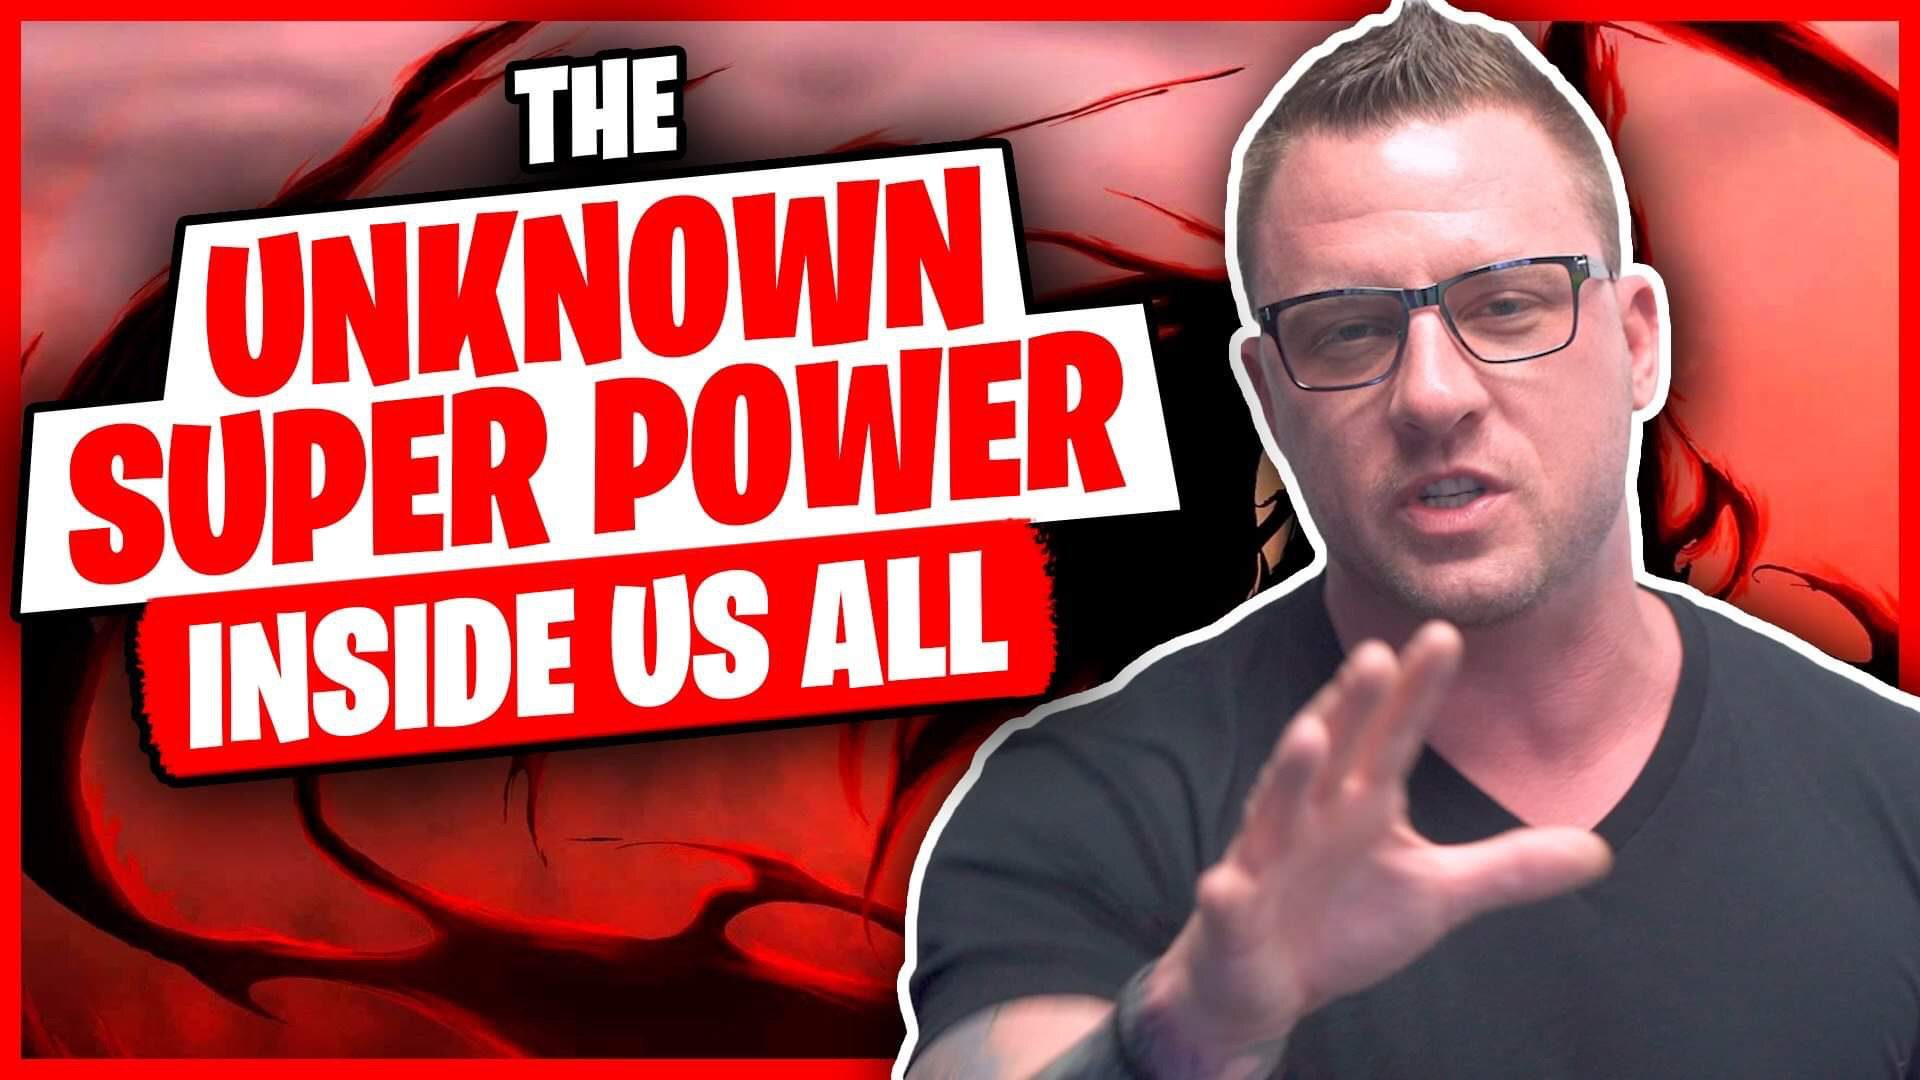 The Unknown Superpower Inside Us All [Video]